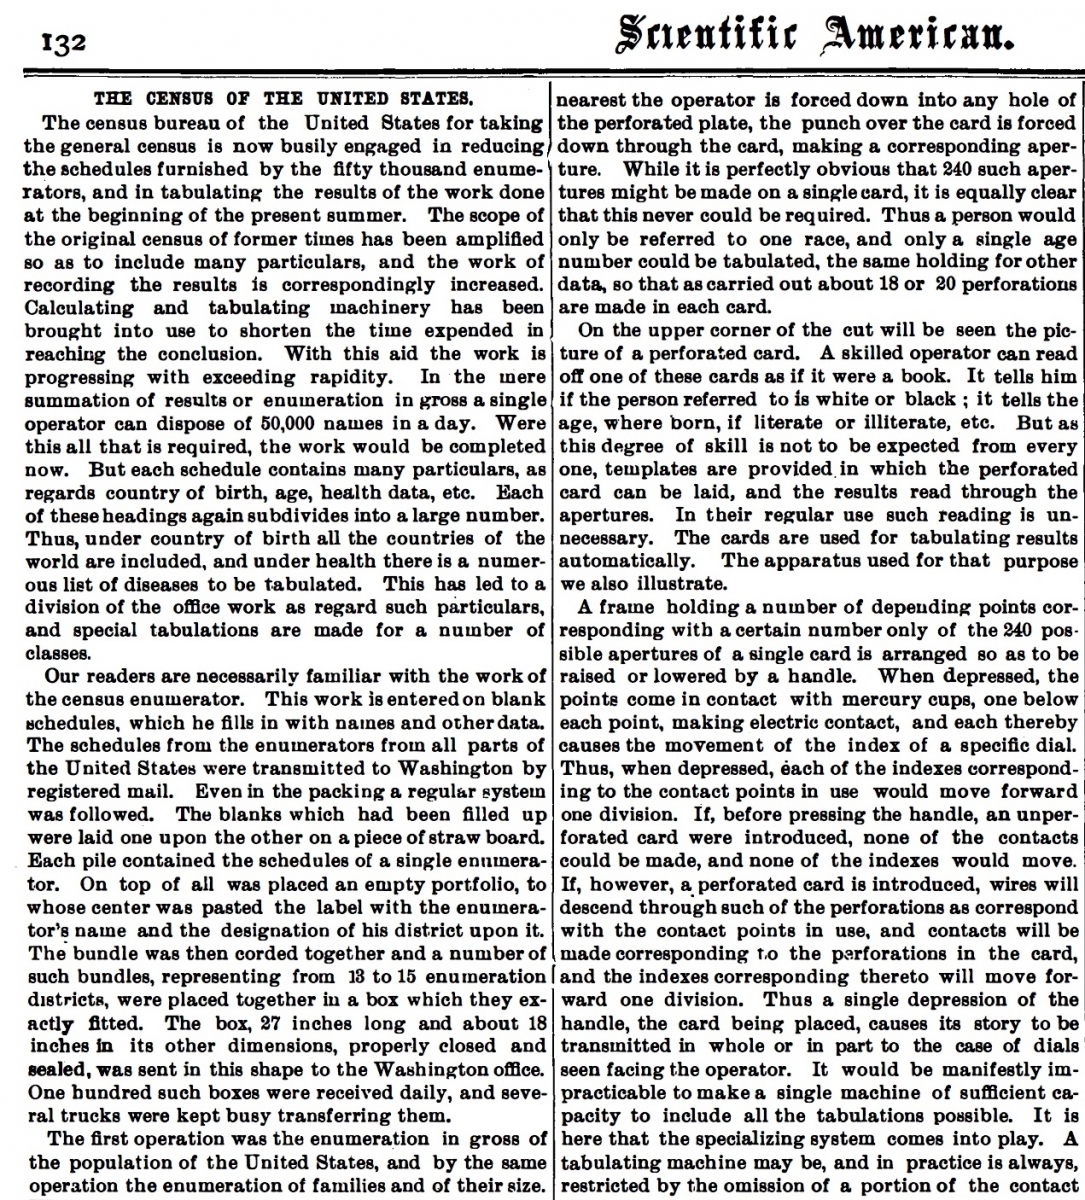 Page 132 from 30 August 1890 Scientific American.